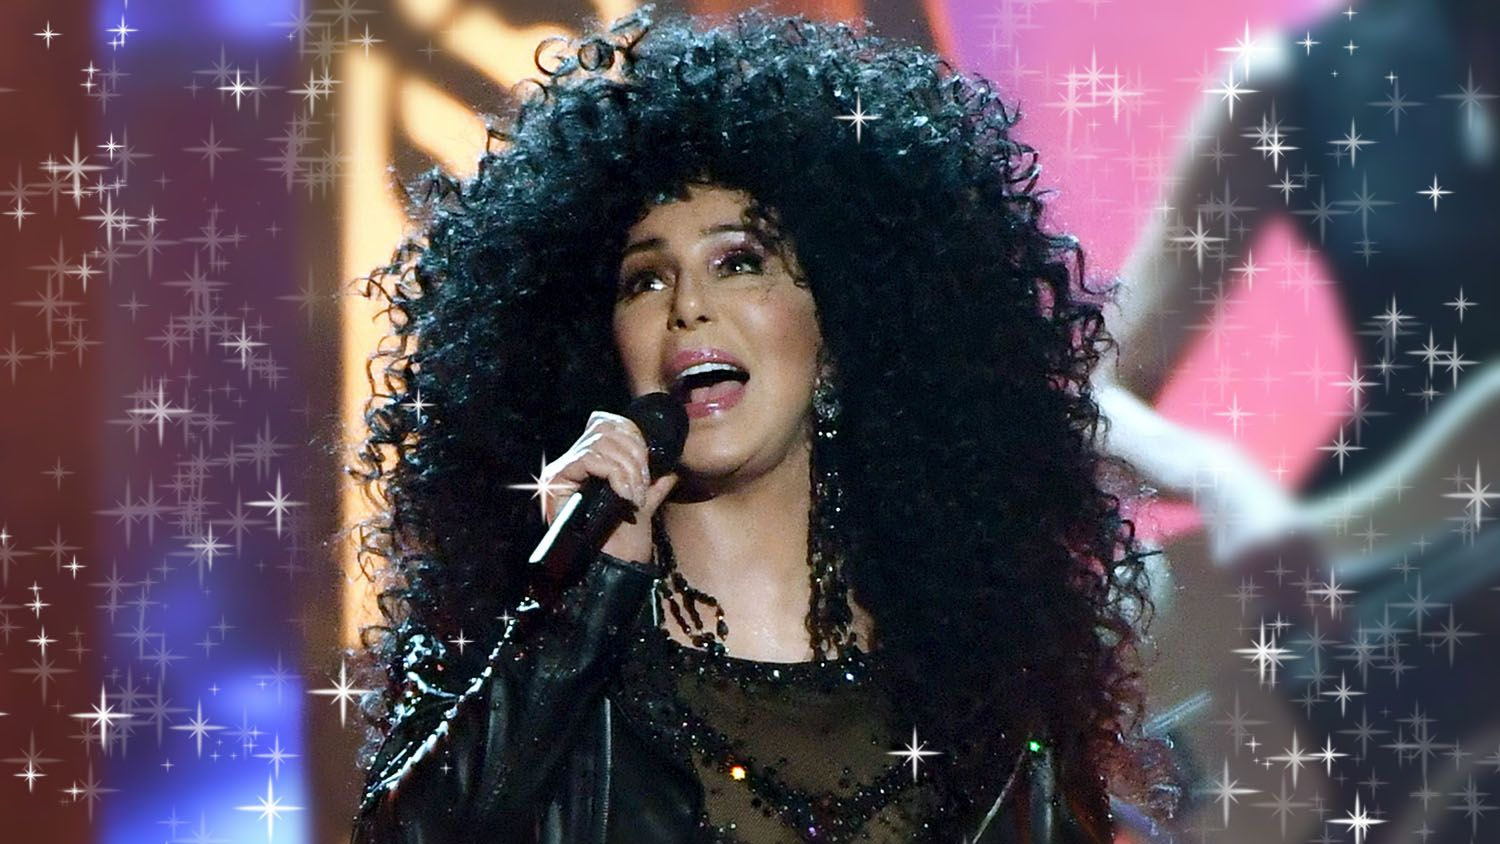 Cher's top 10 acting roles and cameos of all time